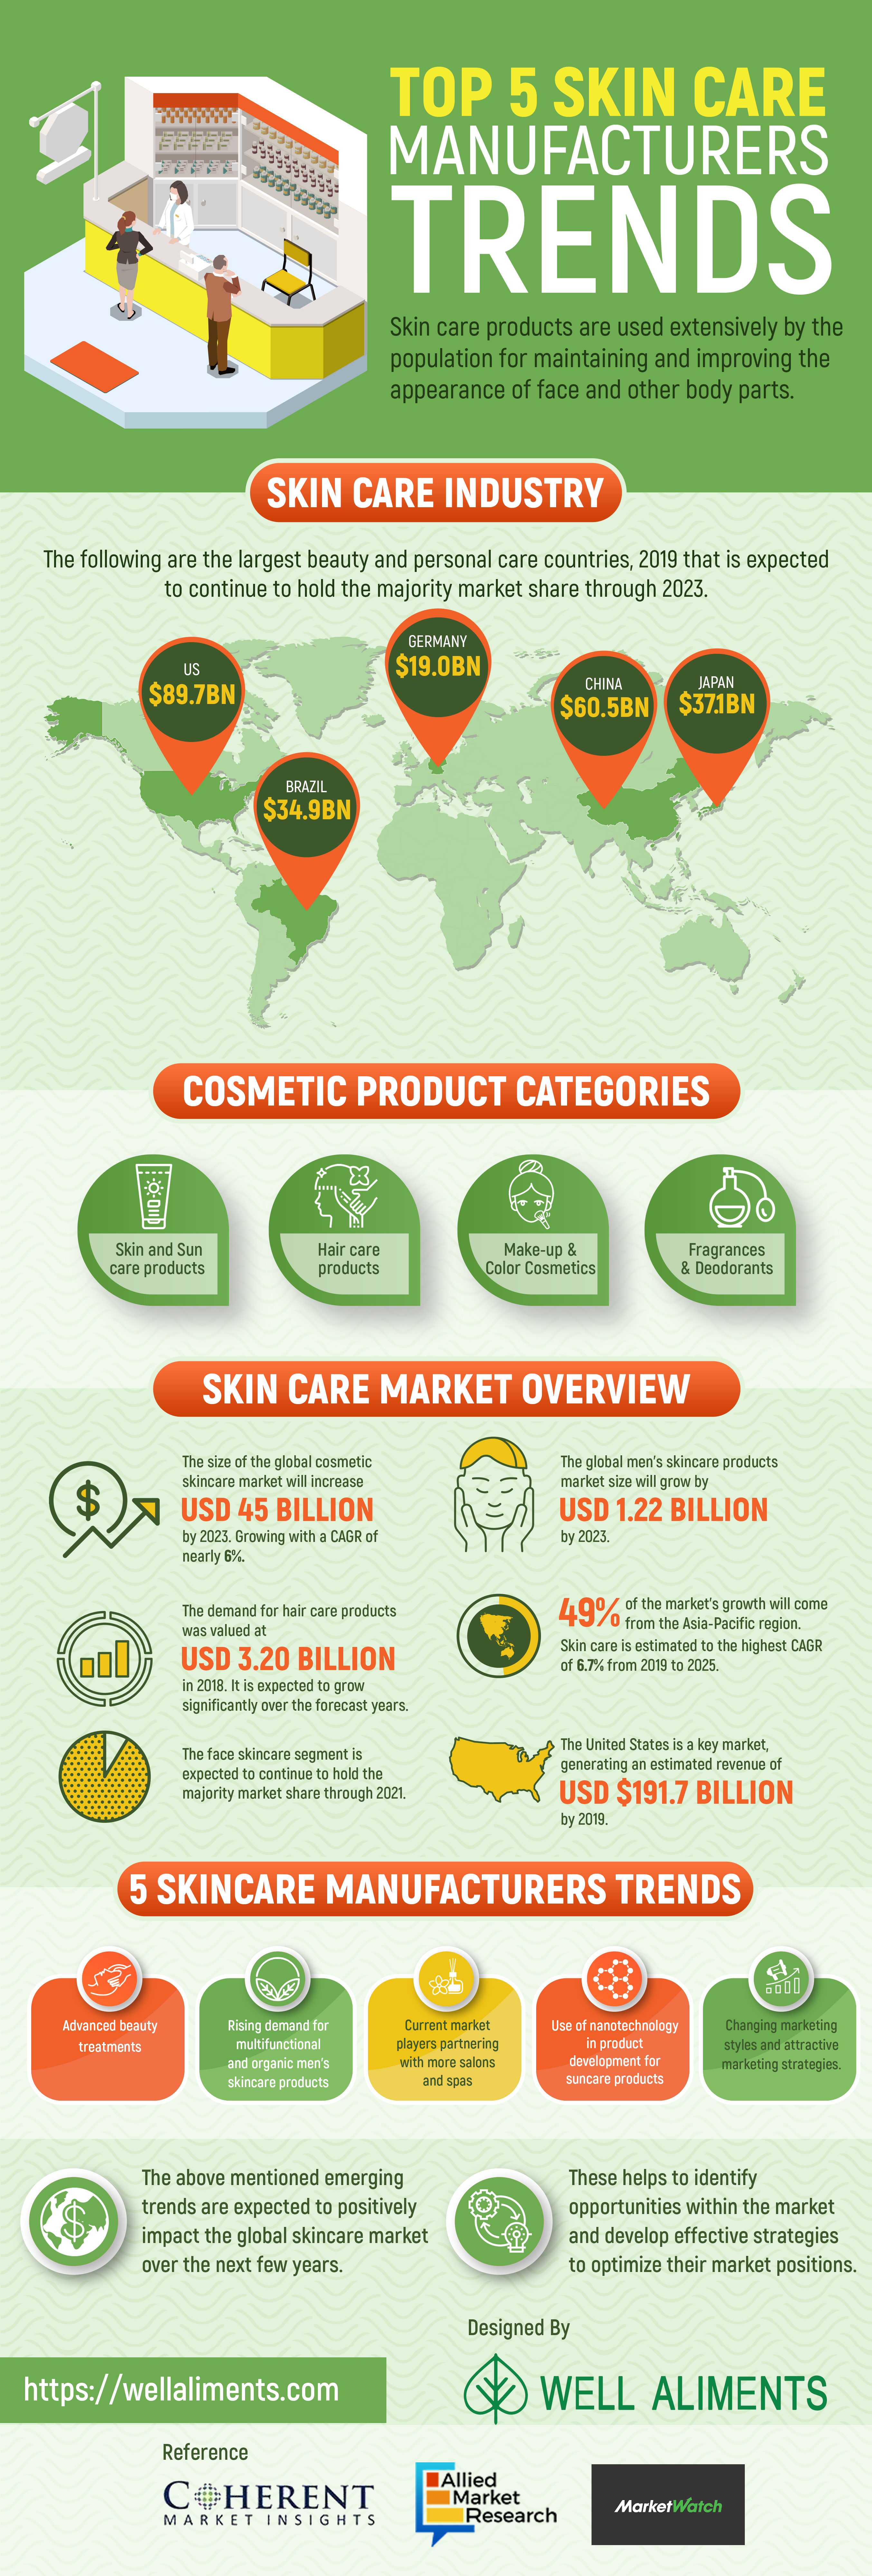 Top 5 Skin care Manufacturers Trends